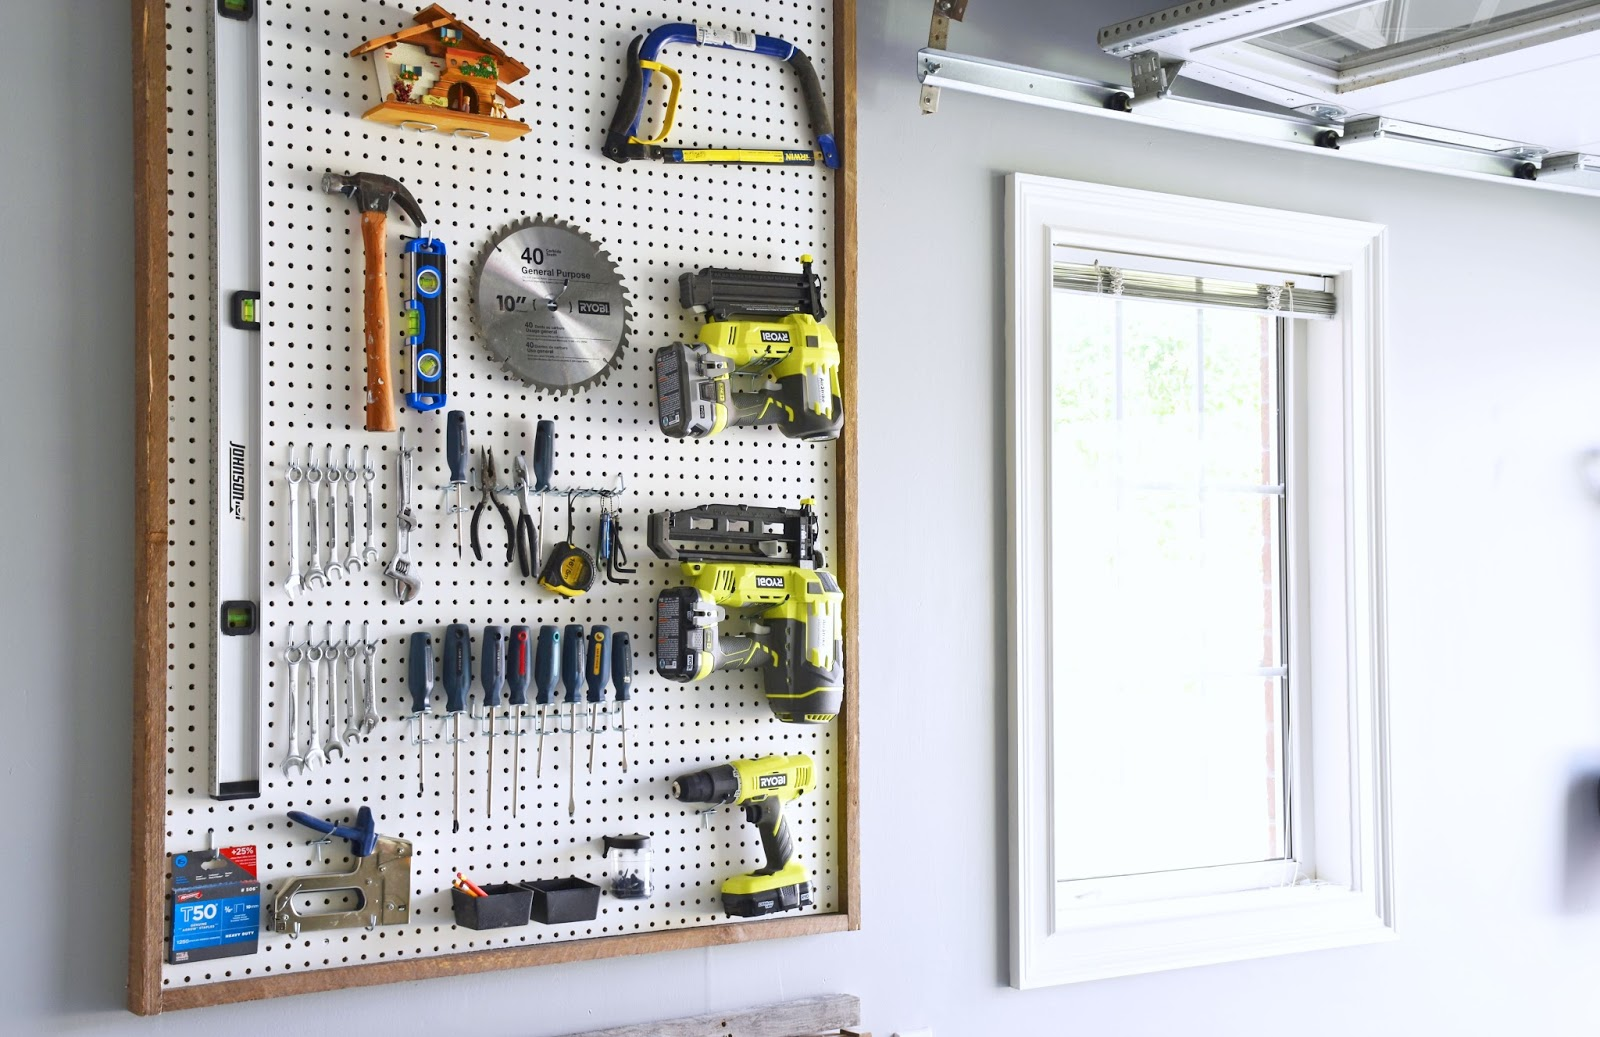 art pegboard in of organization garage real organizer woman everyday workbench peg board the folding tool diy life